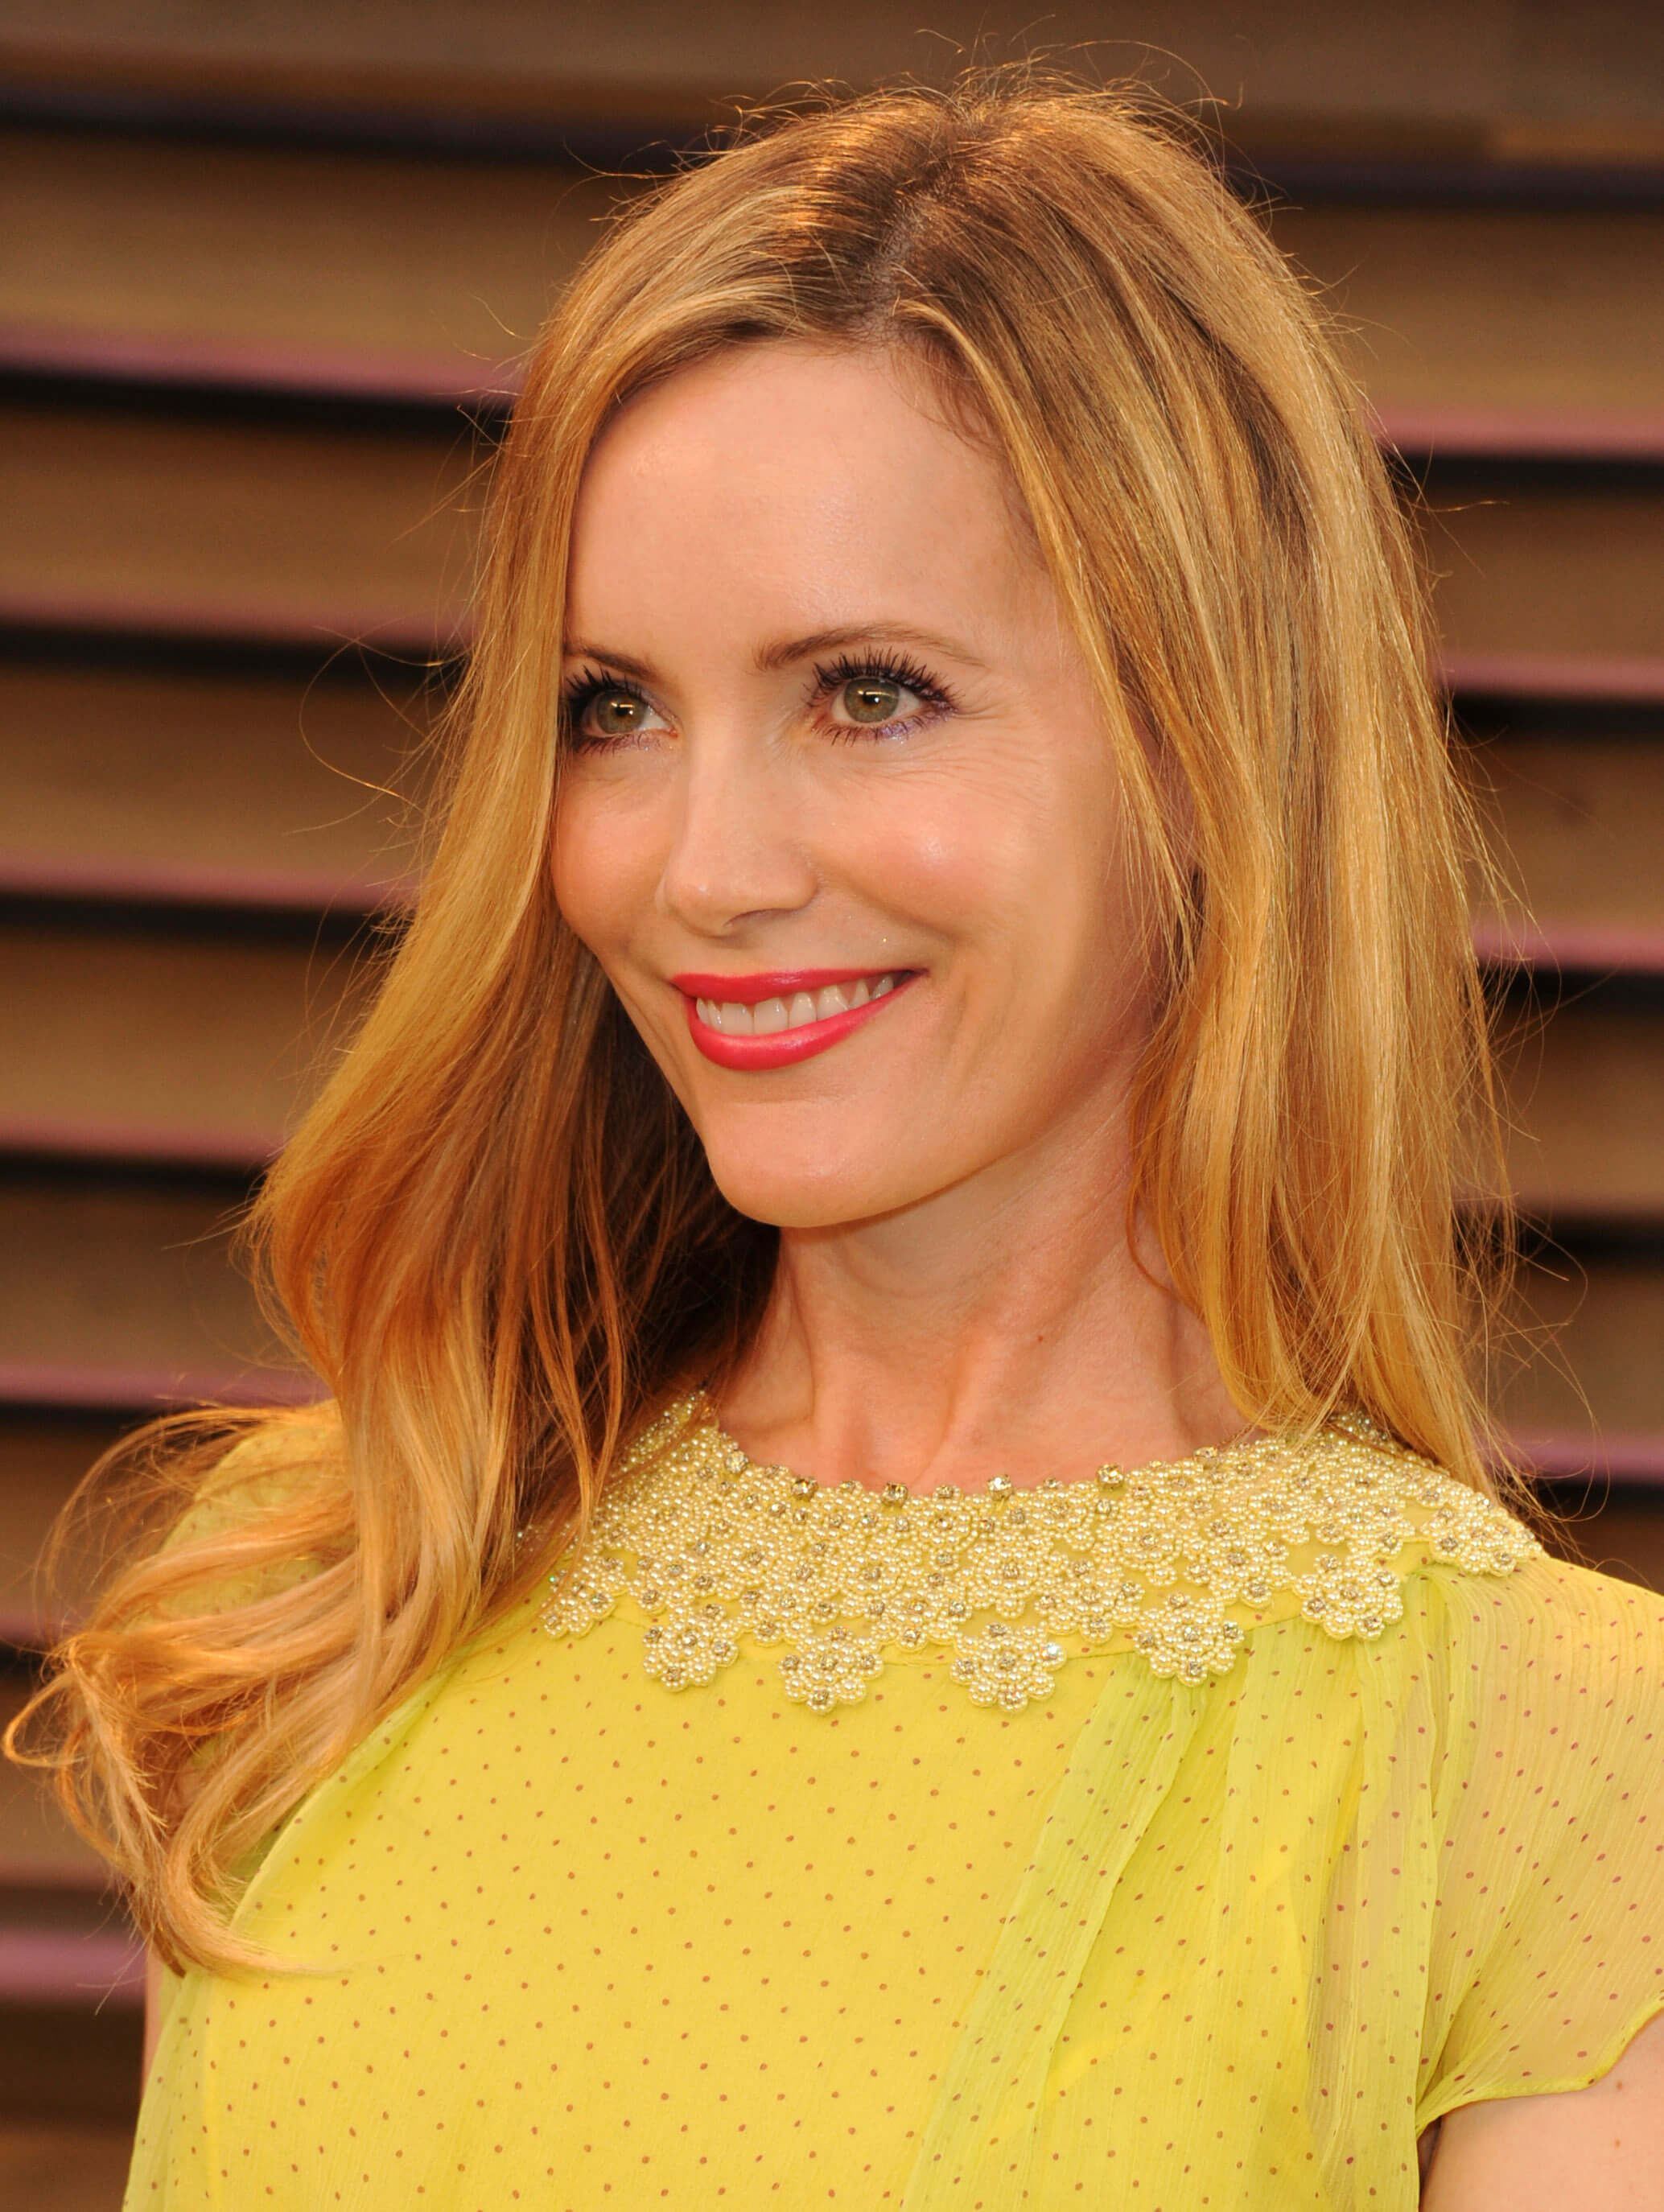 49 hot photos of Leslie Mann exposing their sexy figure in